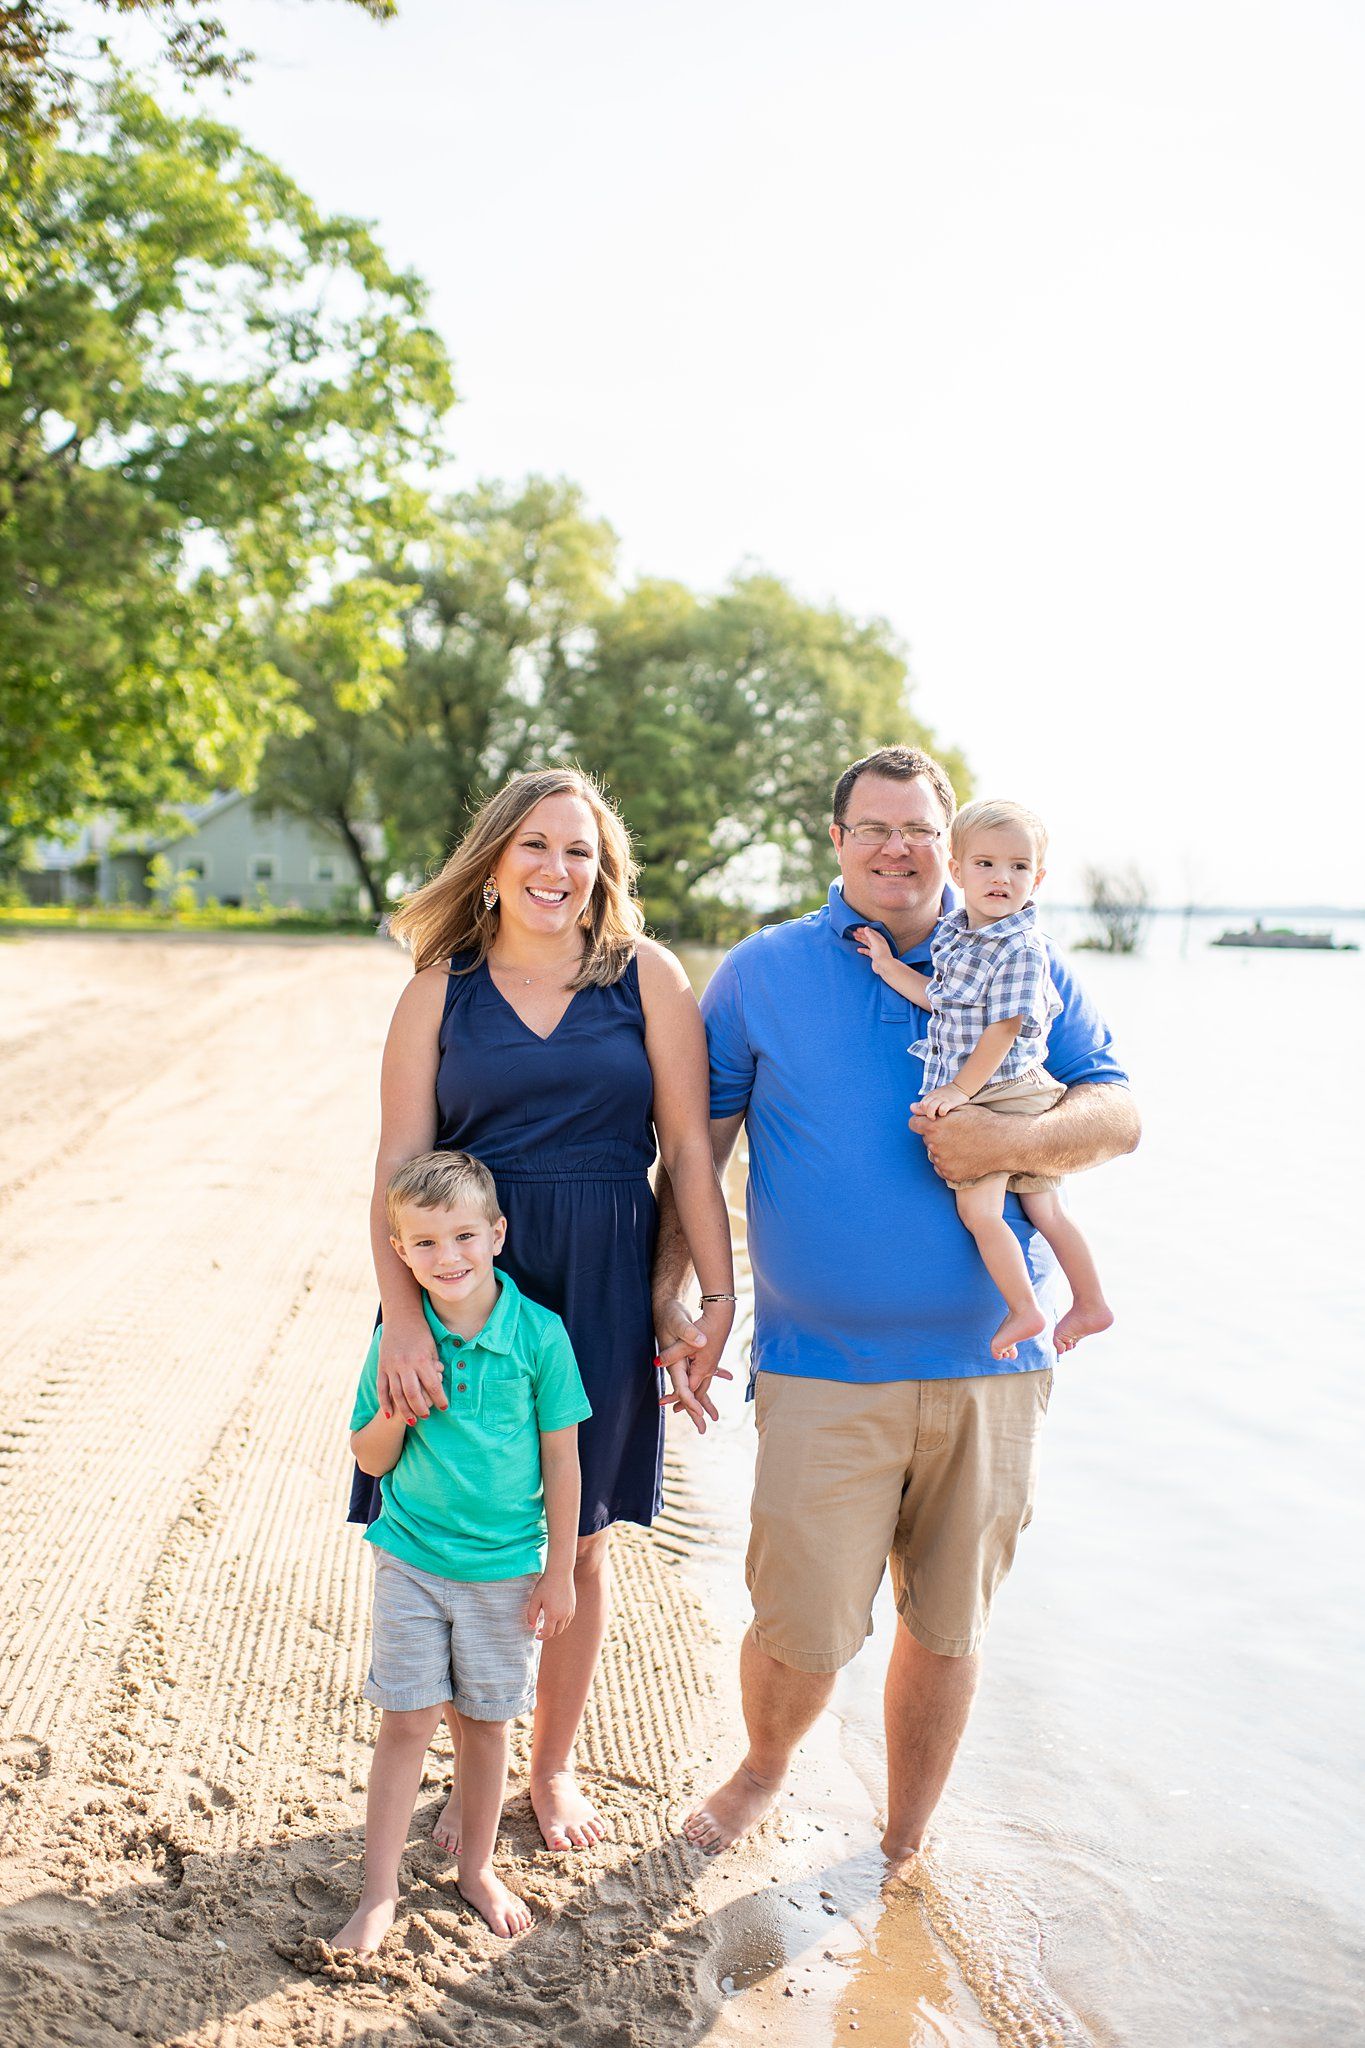 traverse city lifestyle family photography-7.jpg